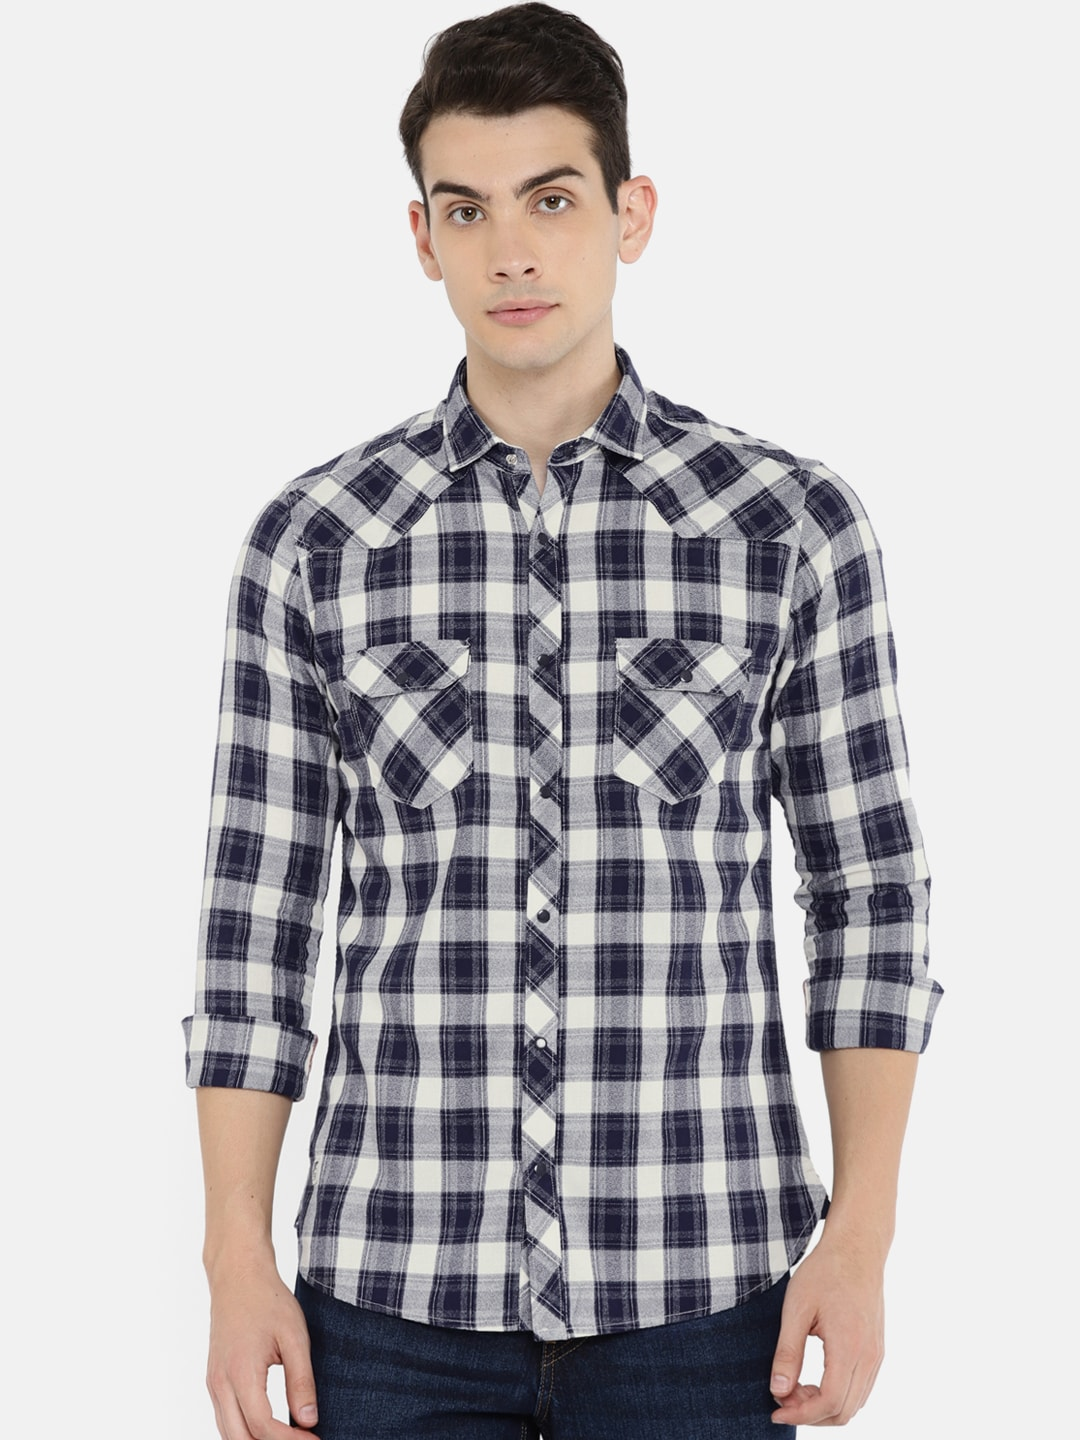 42a797faf489 Mens Clothing - Buy Clothing for Men Online in India